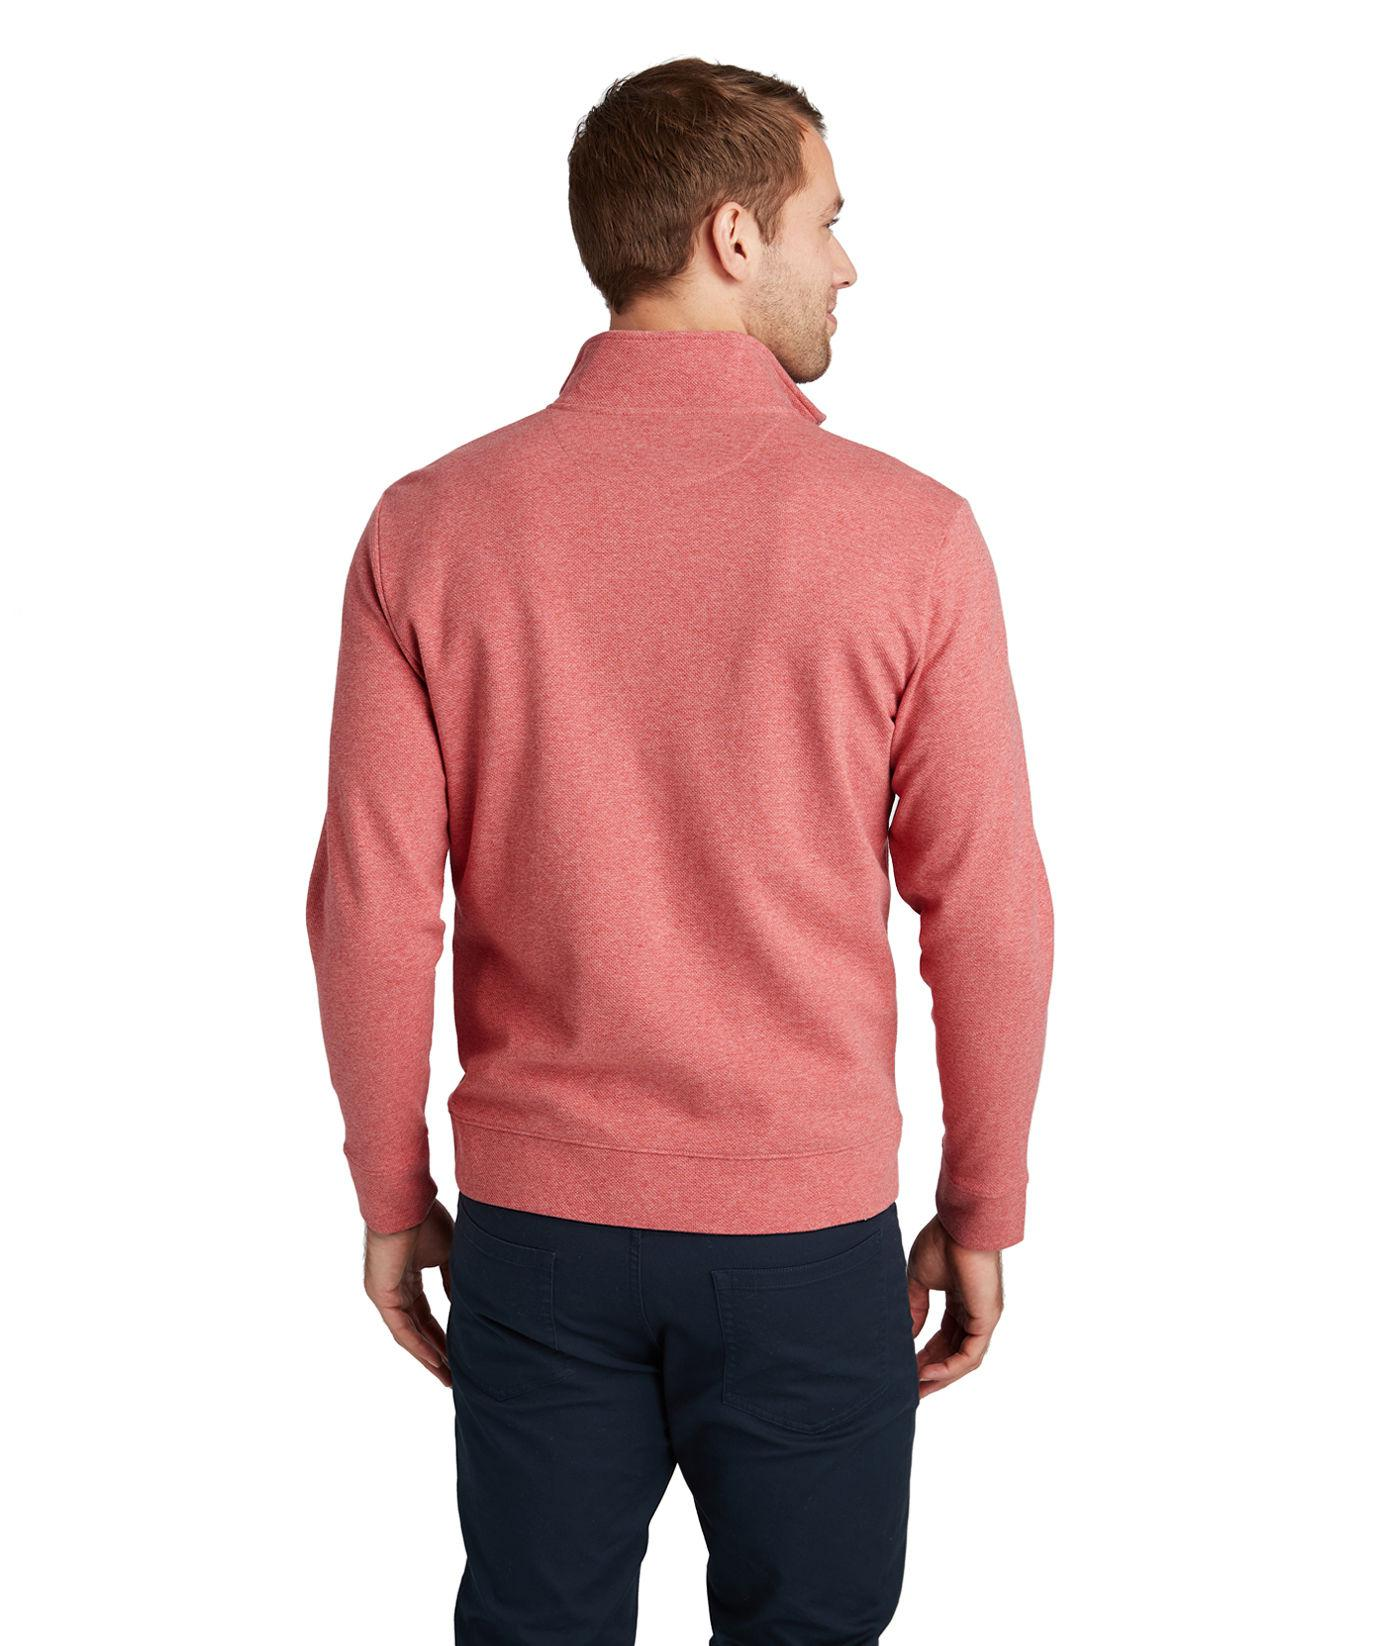 2d5c6a4a5 Lyst - Vineyard Vines New Saltwater 1 2 Zip in Red for Men